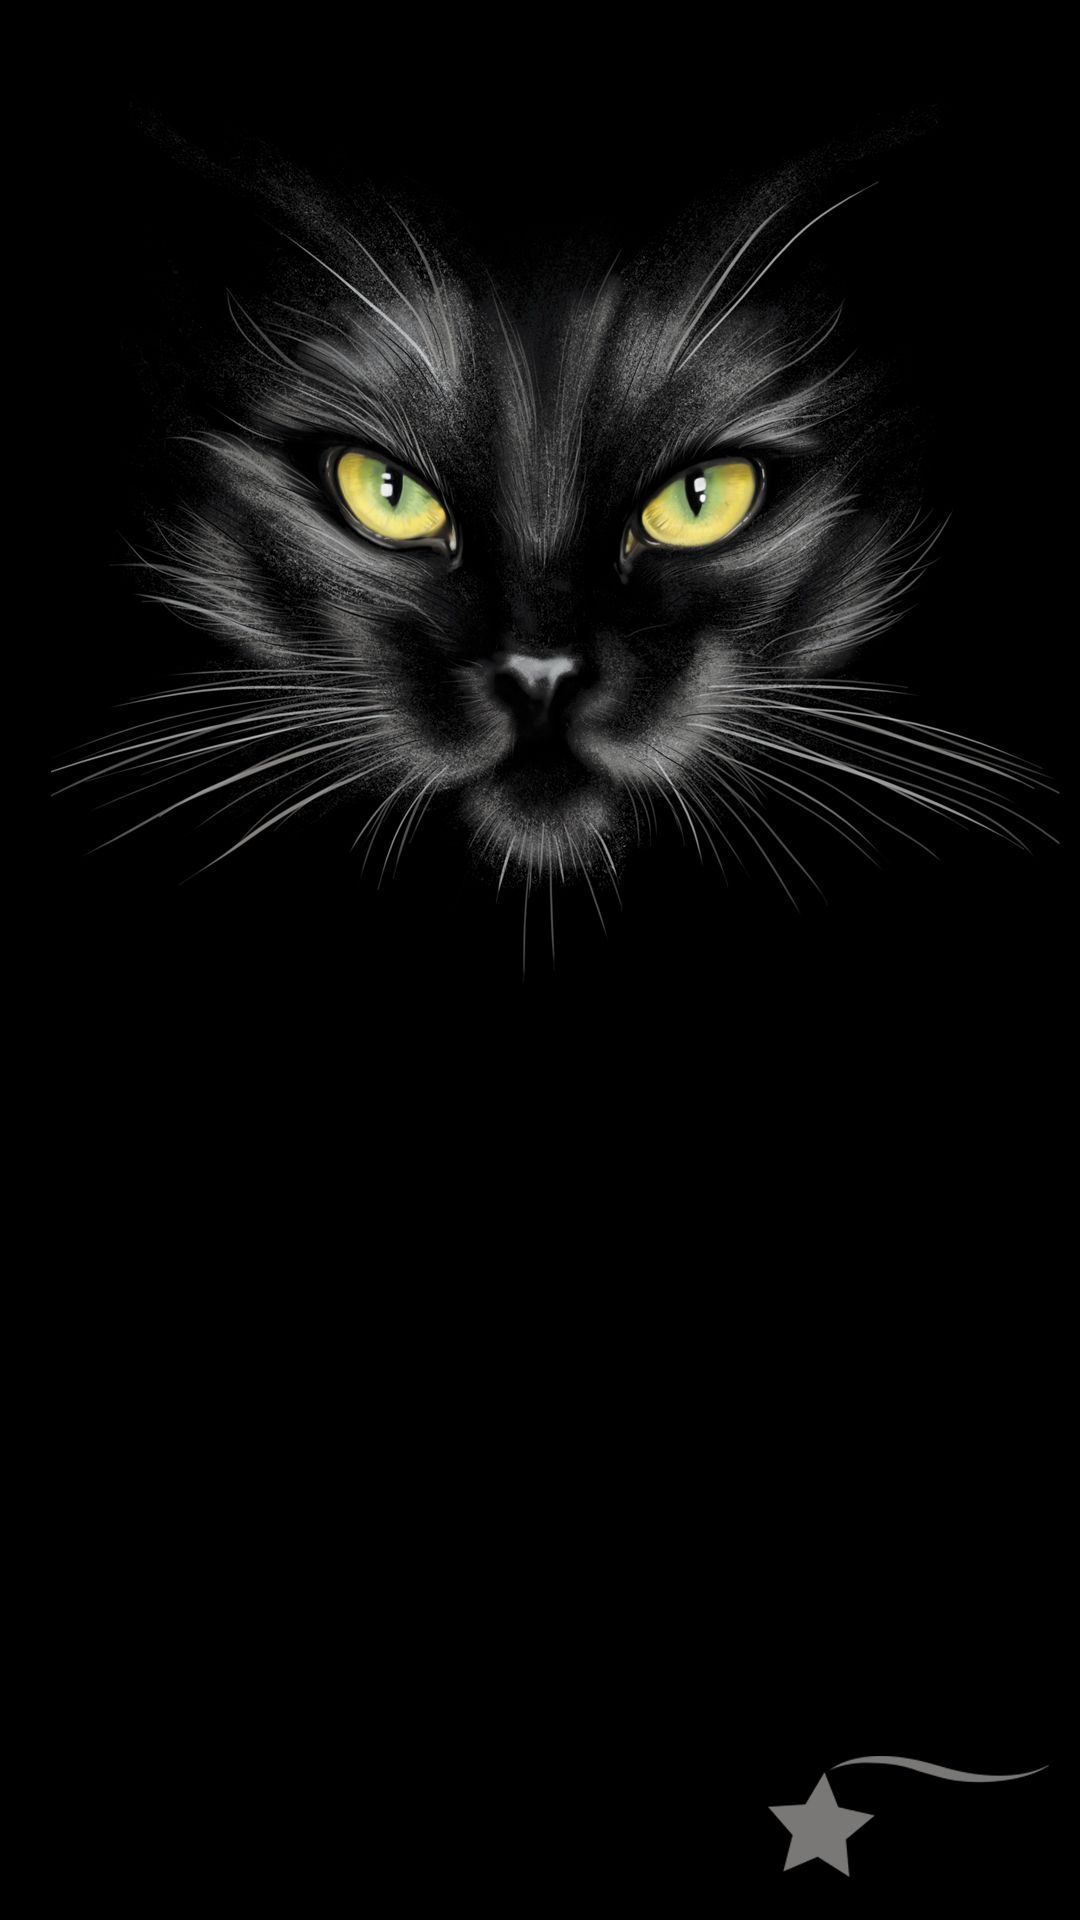 Destira Phone Wallpaper To Match Our Spooky Black Cat Halloween Leotard Black Cat Drawing Cat Wallpaper Cat With Blue Eyes